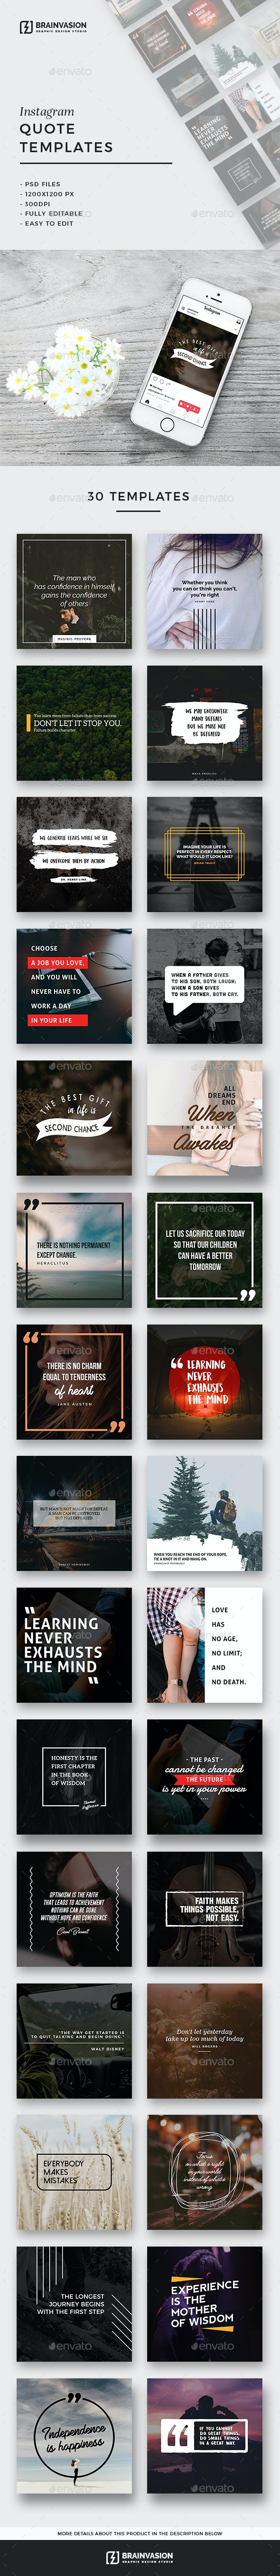 30 Instagram Quote Templates - Social Media Web Elements